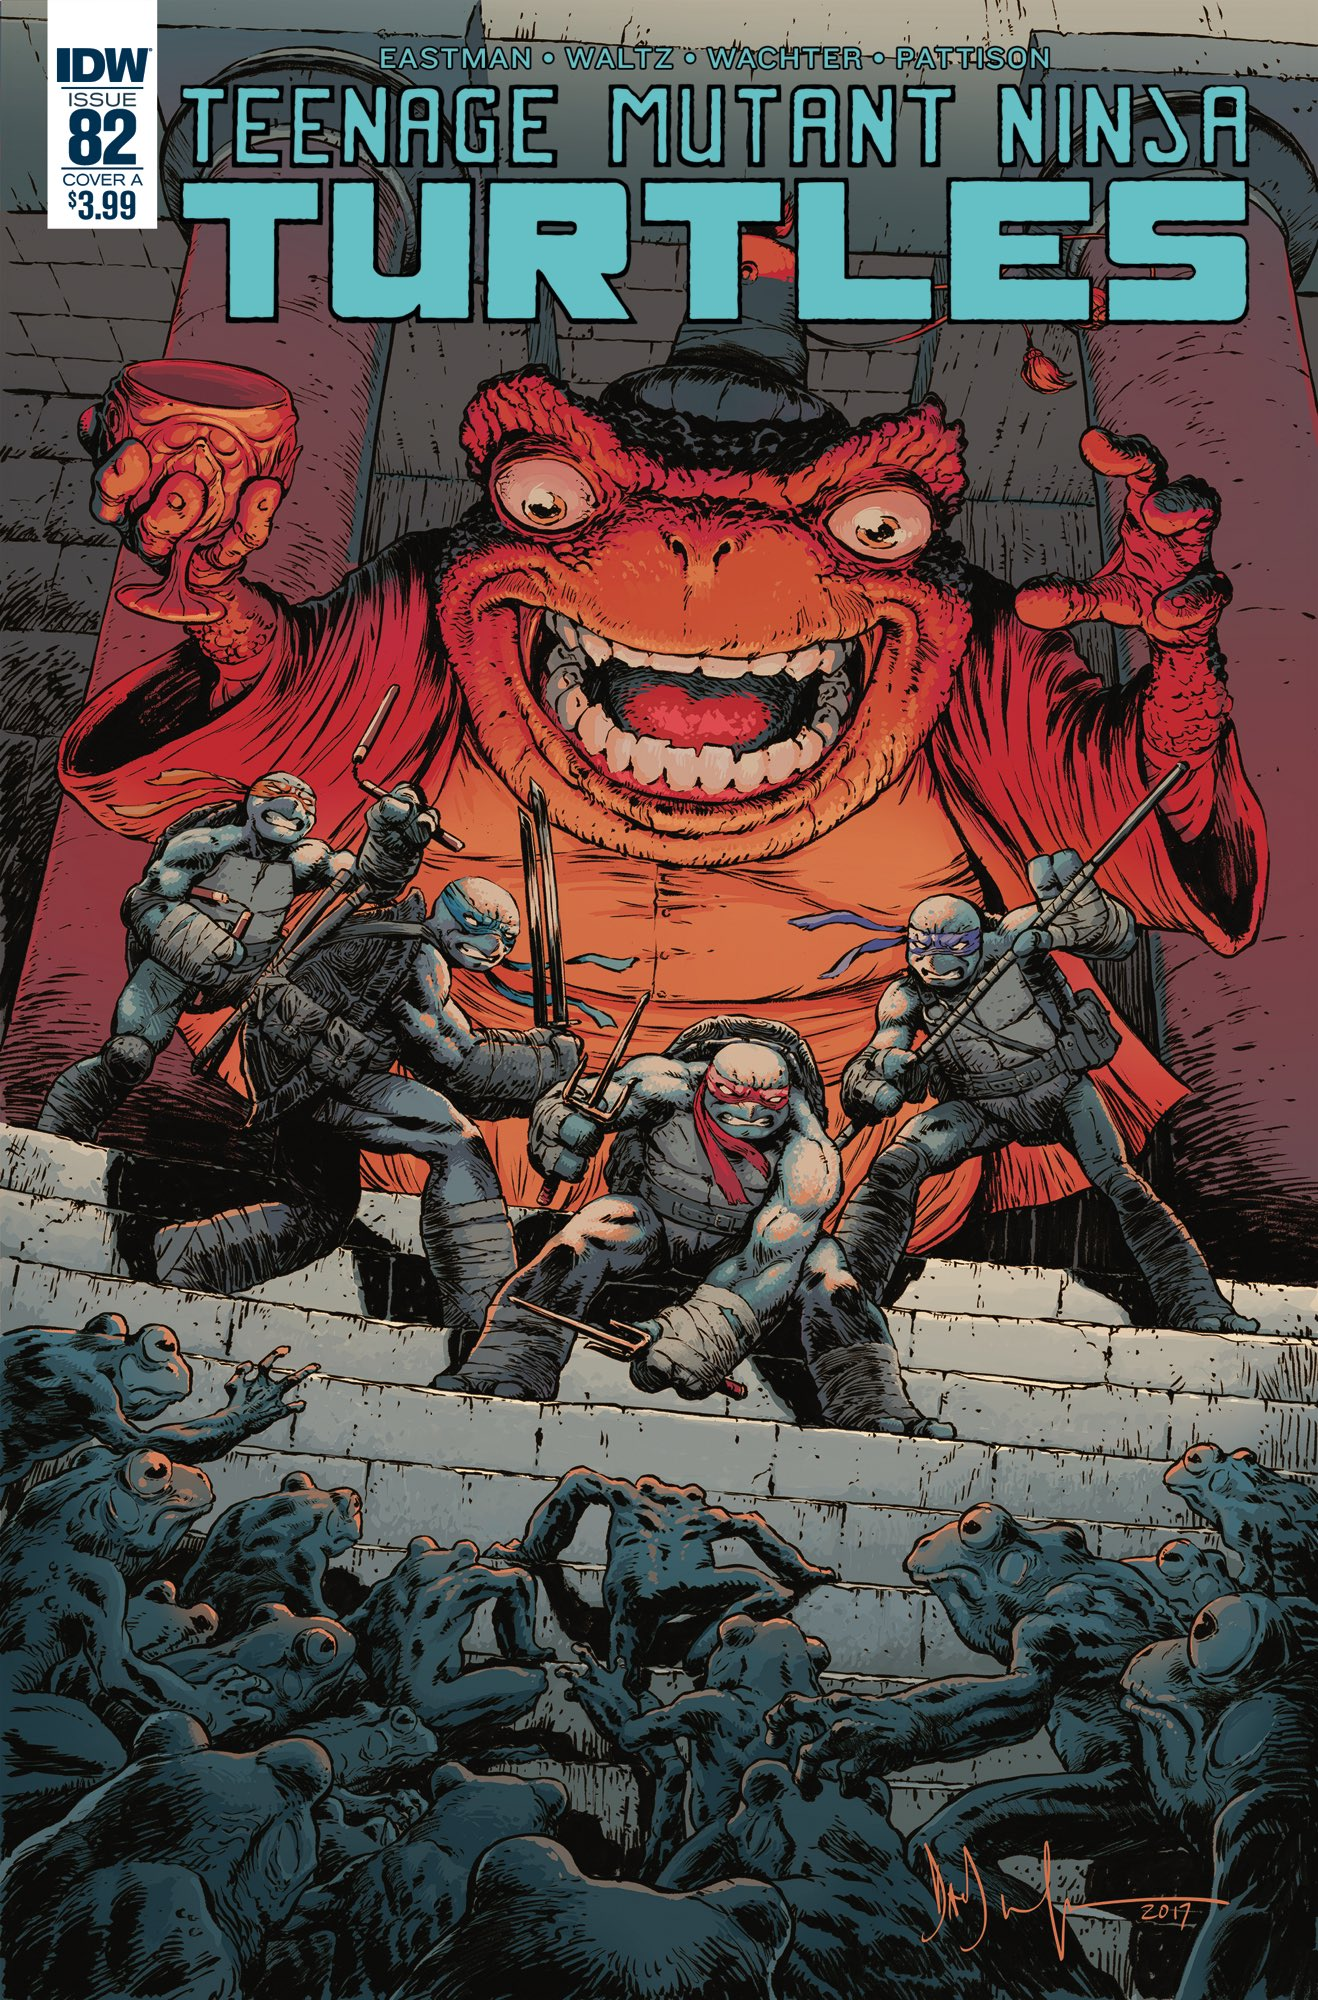 Teenage Mutant Ninja Turtles #82, IDW